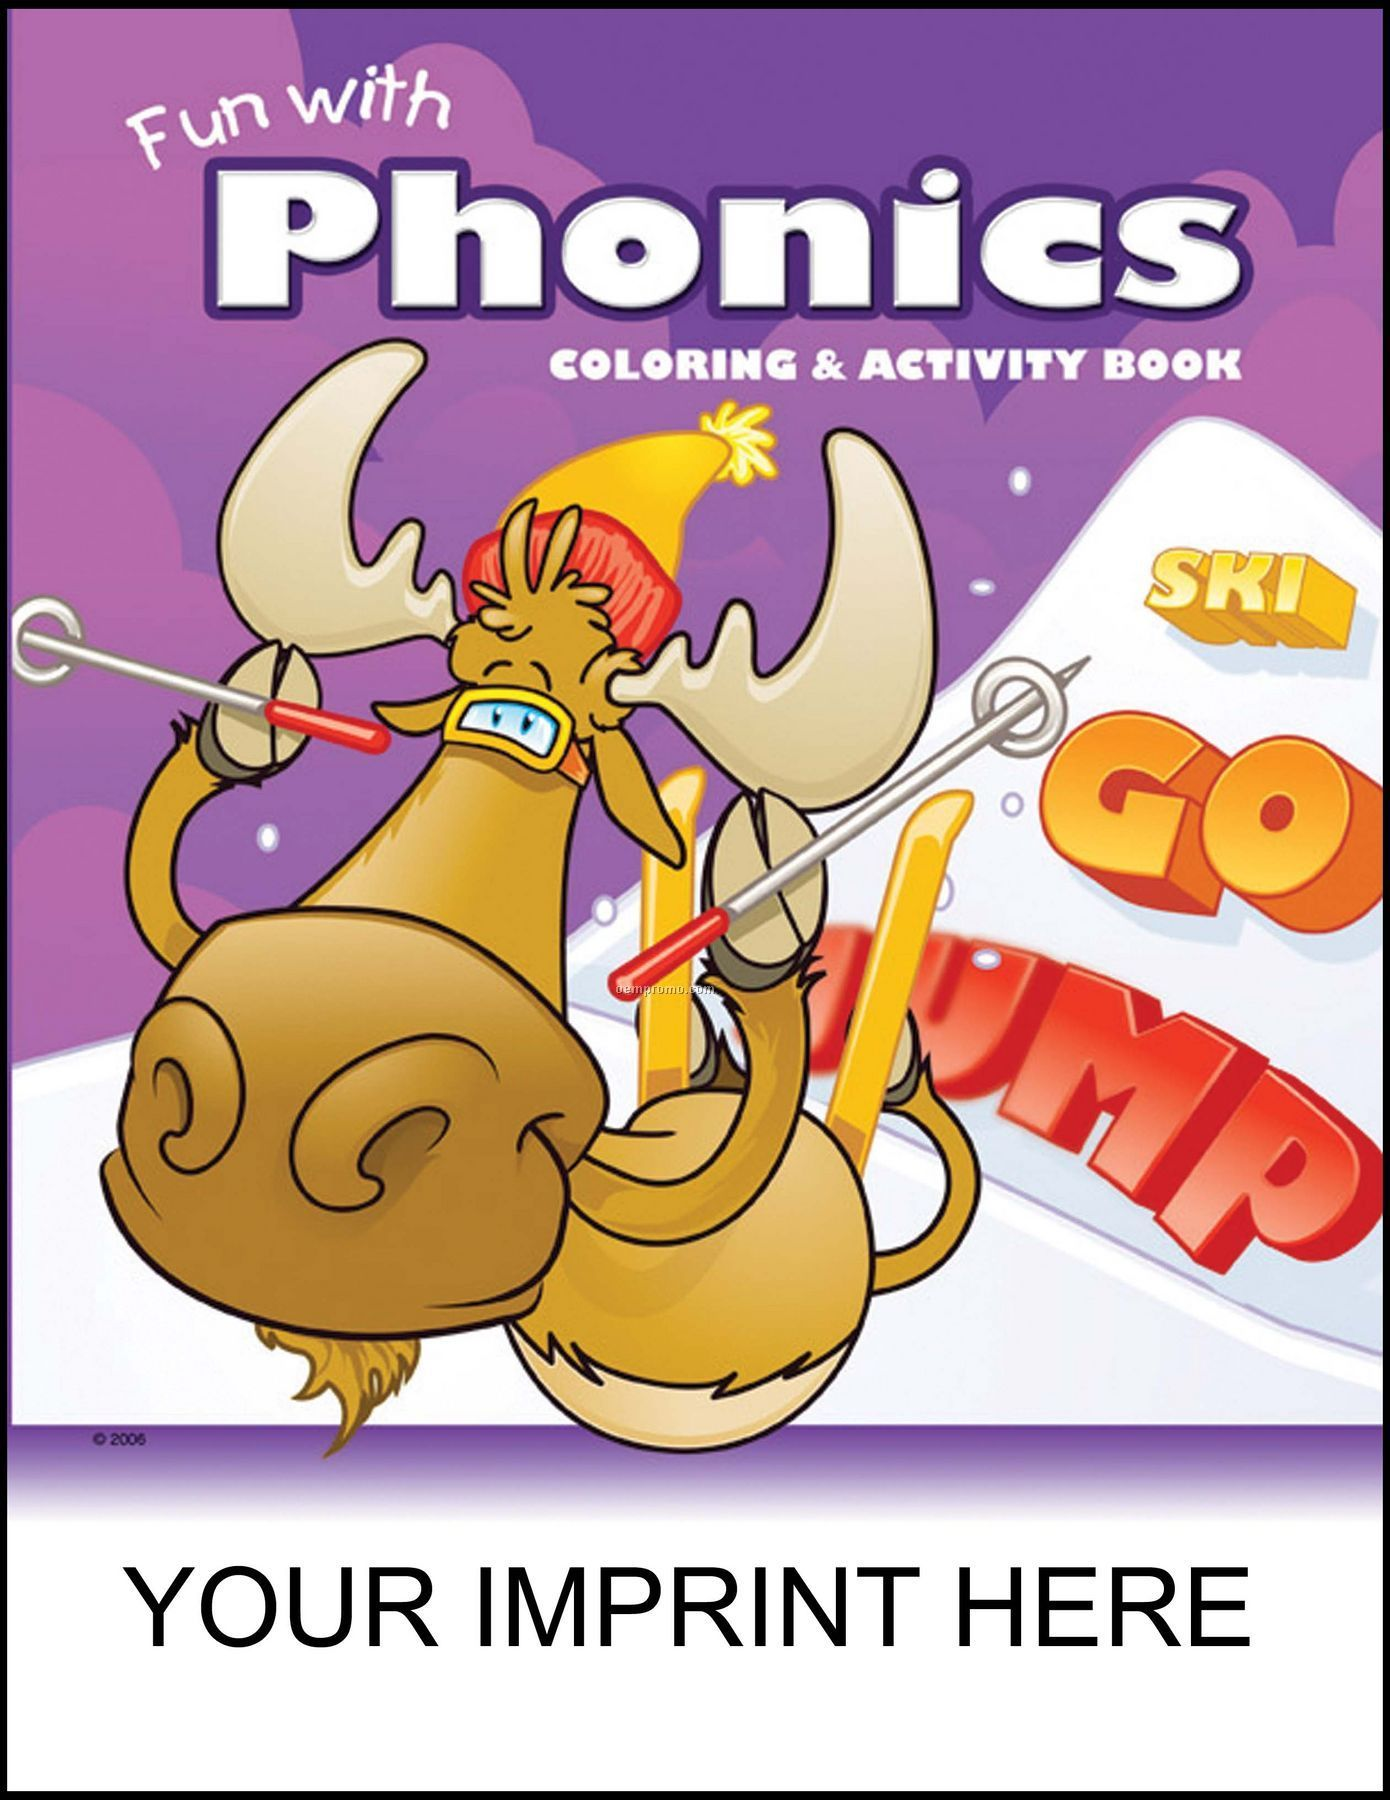 Fun With Phonics Coloring & Activity Book